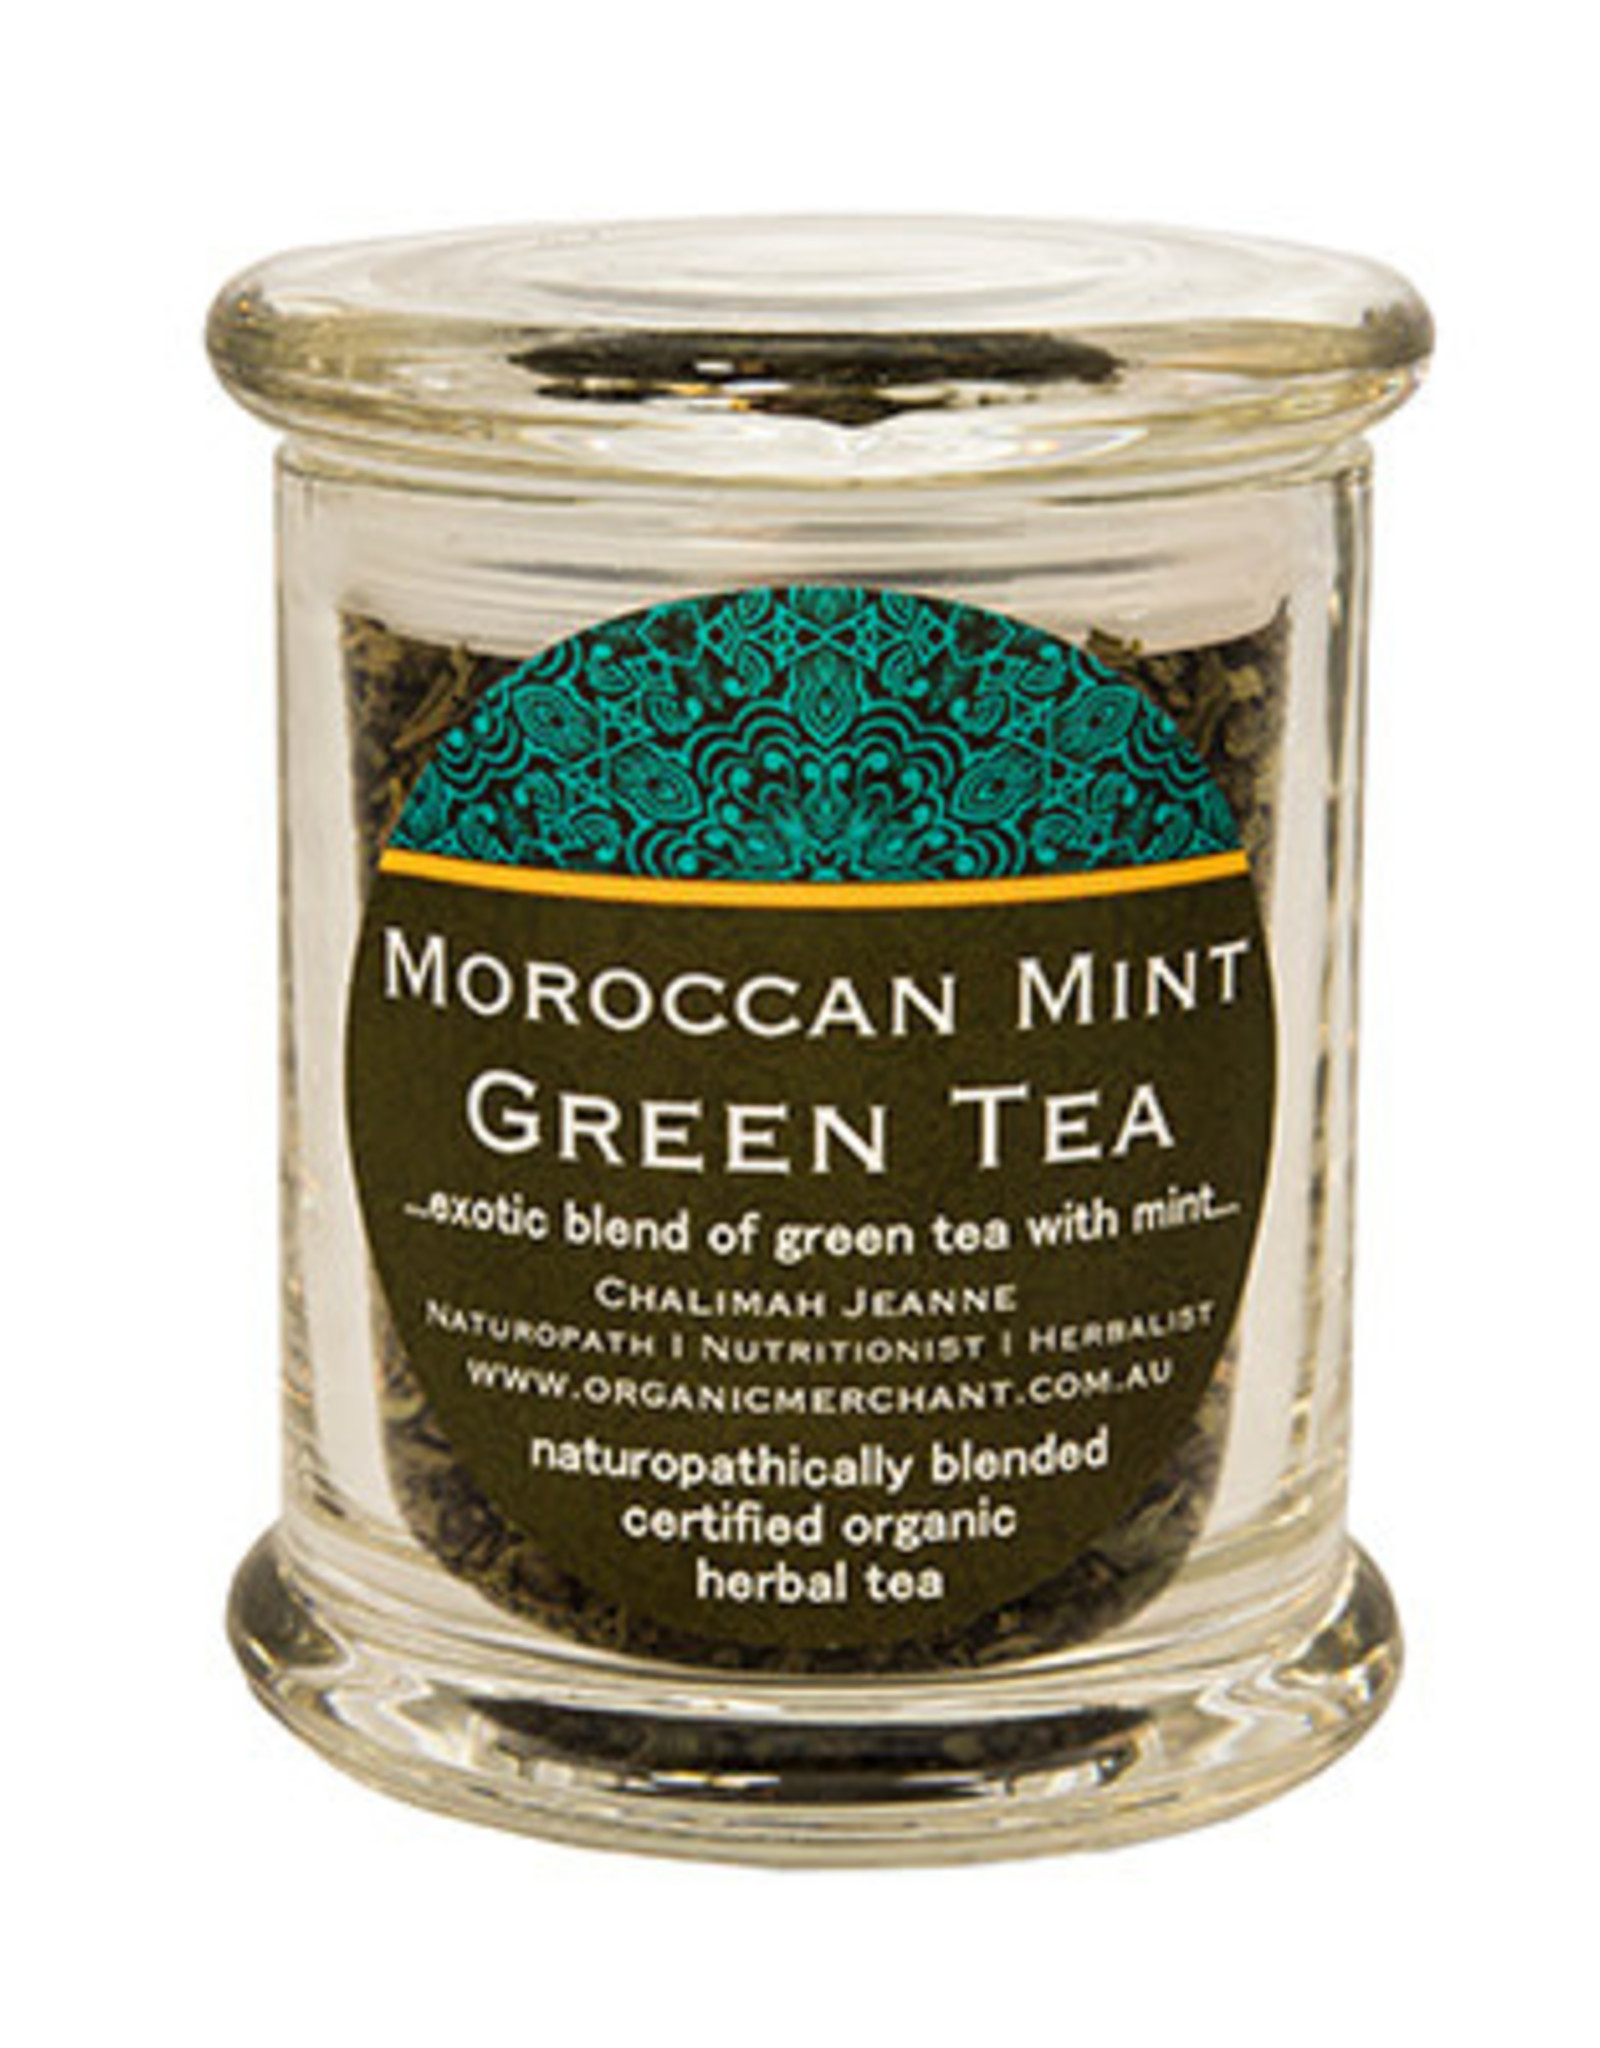 Moroccan Mint Green Tea 80g